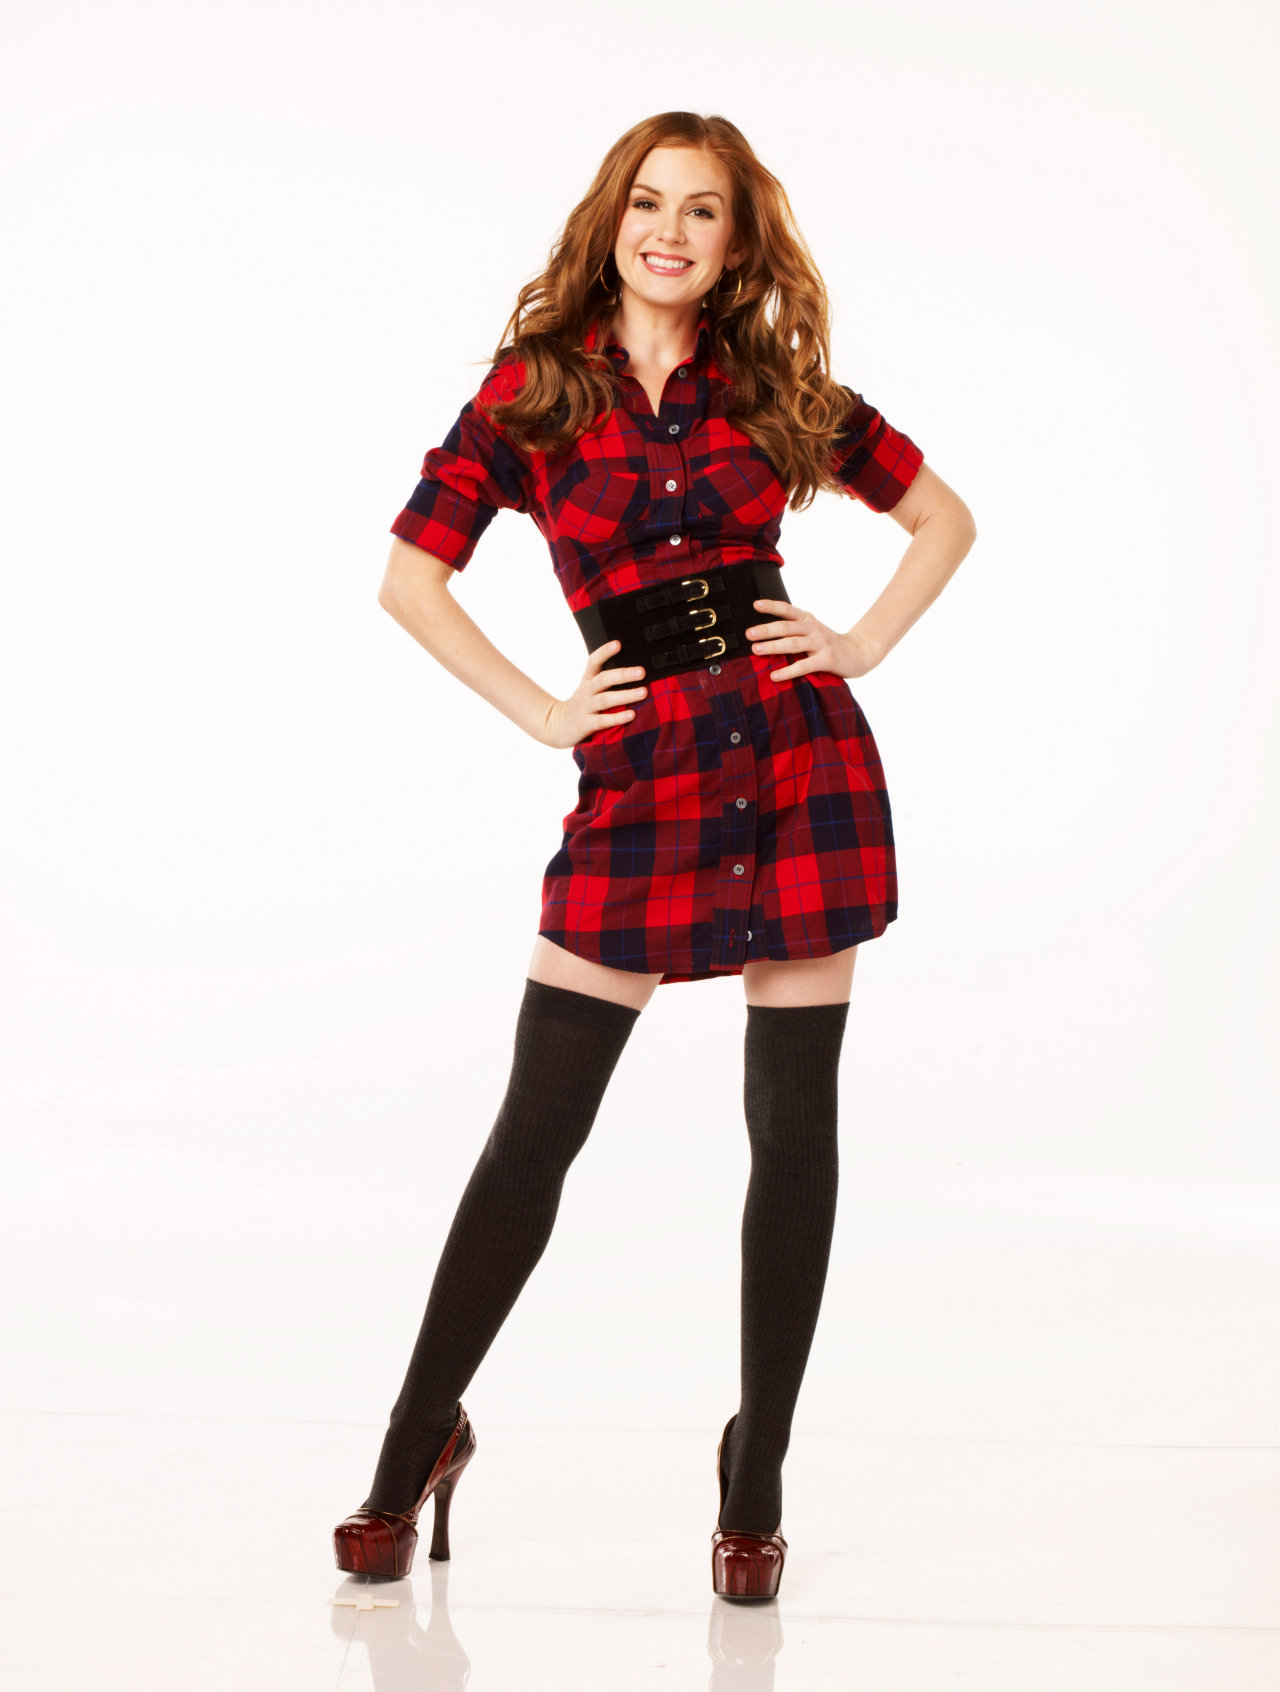 Isla Fisher leaked wallpapers